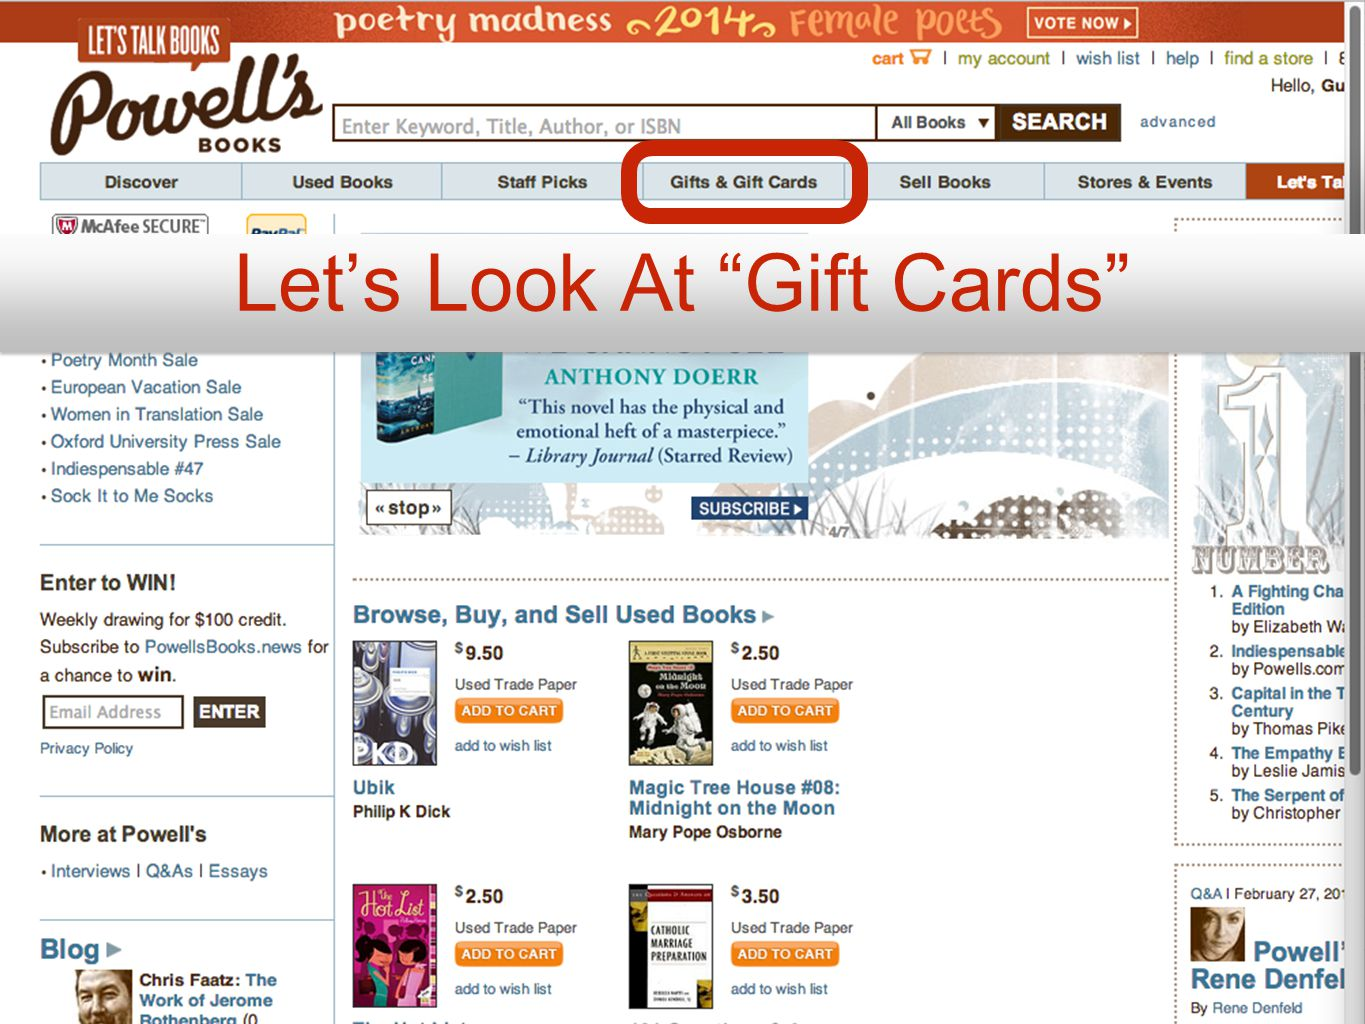 Let's Look At Gift Cards